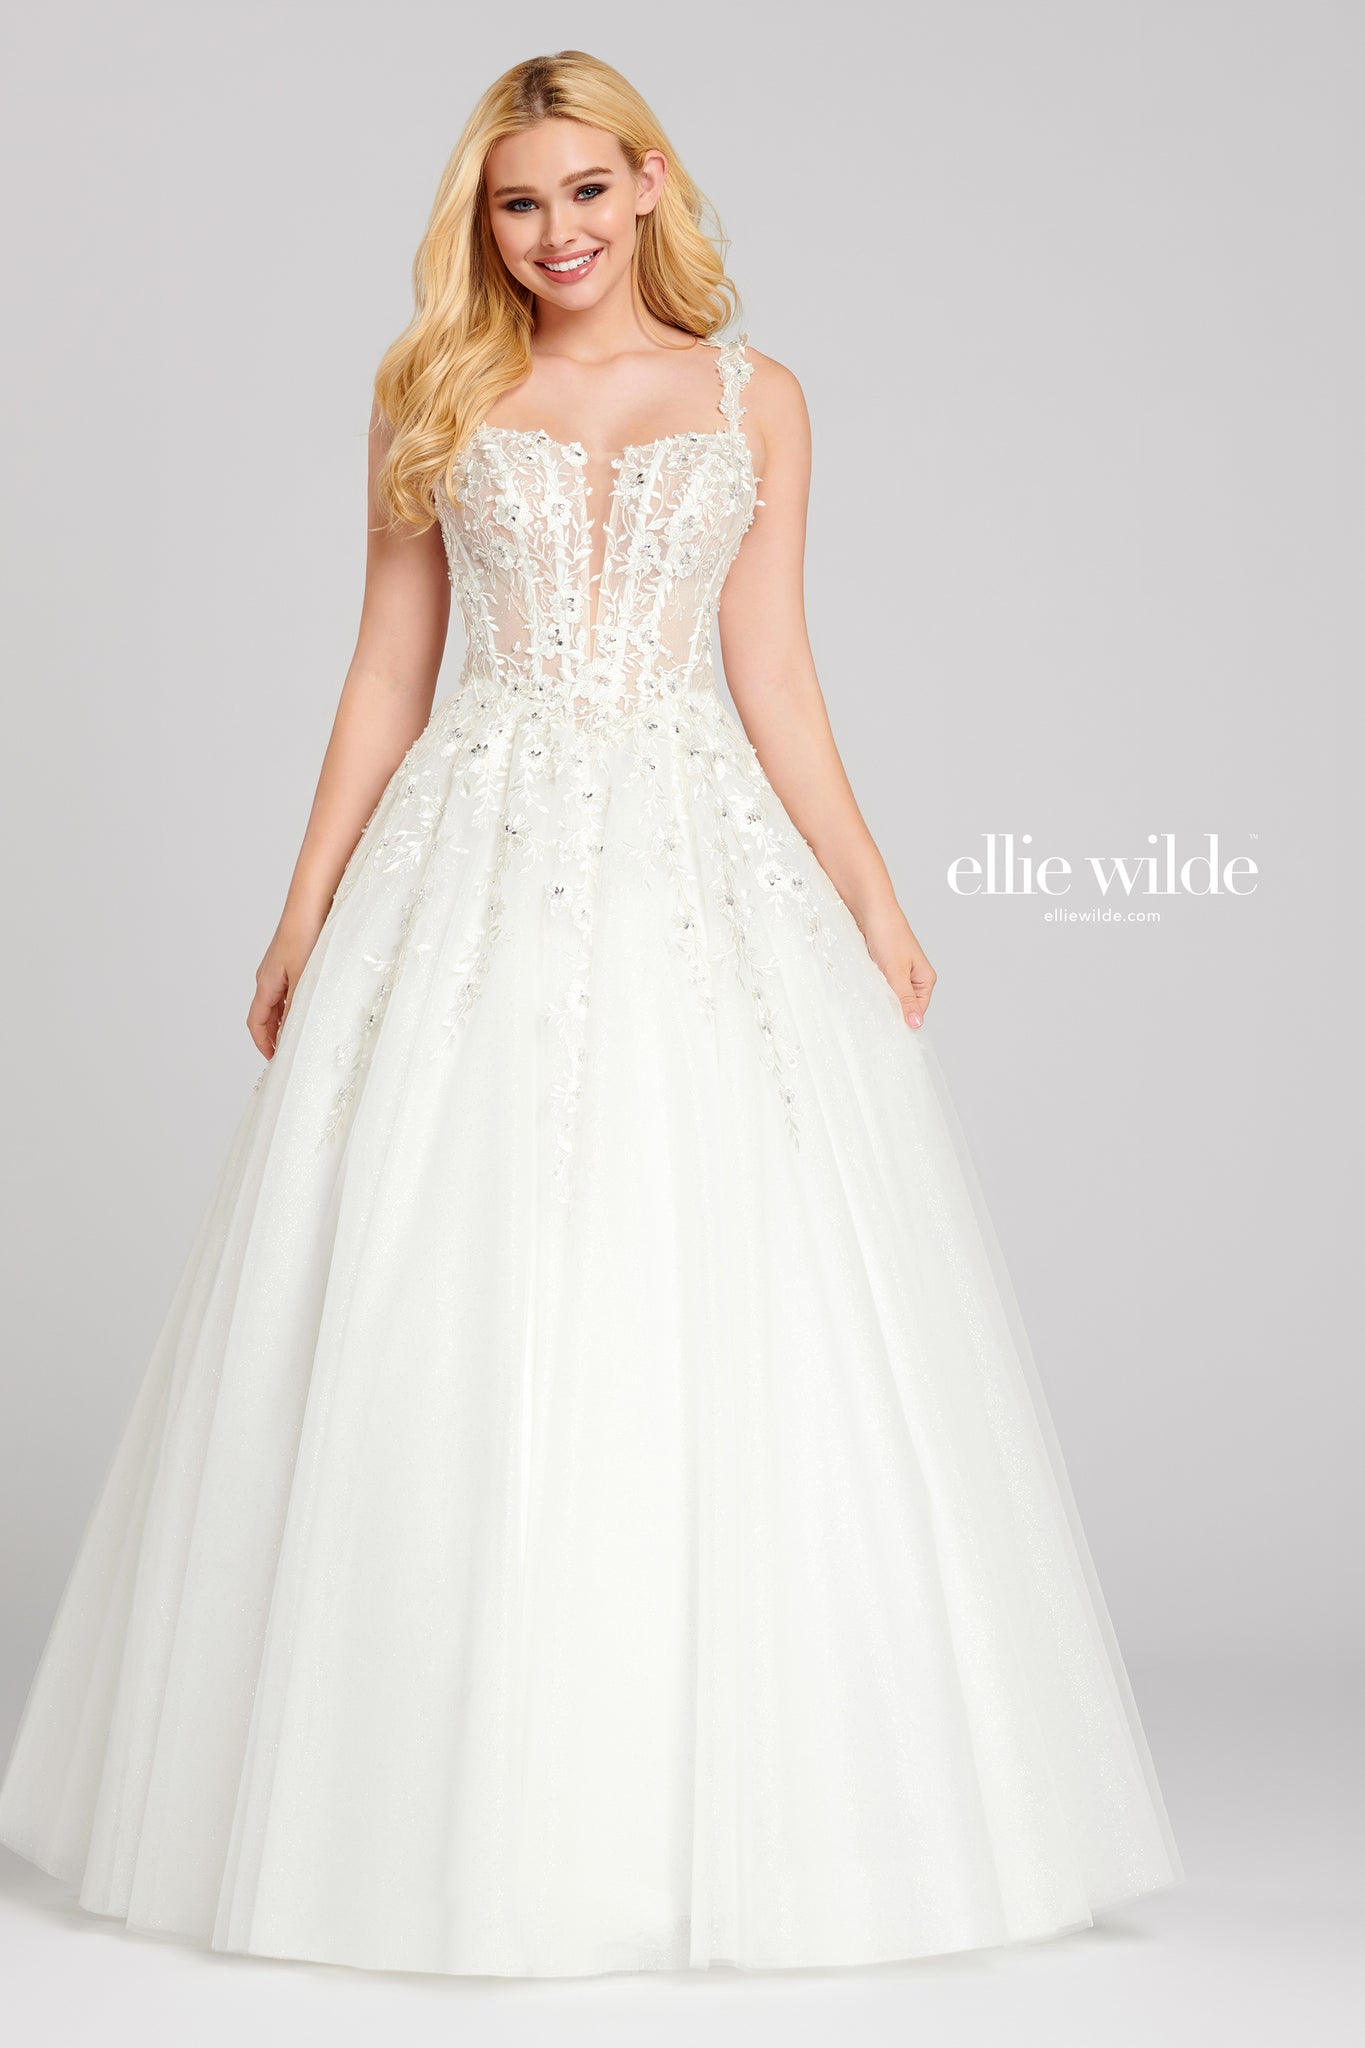 Ellie Wilde White Lace Ball Gown - Gissings Boutique